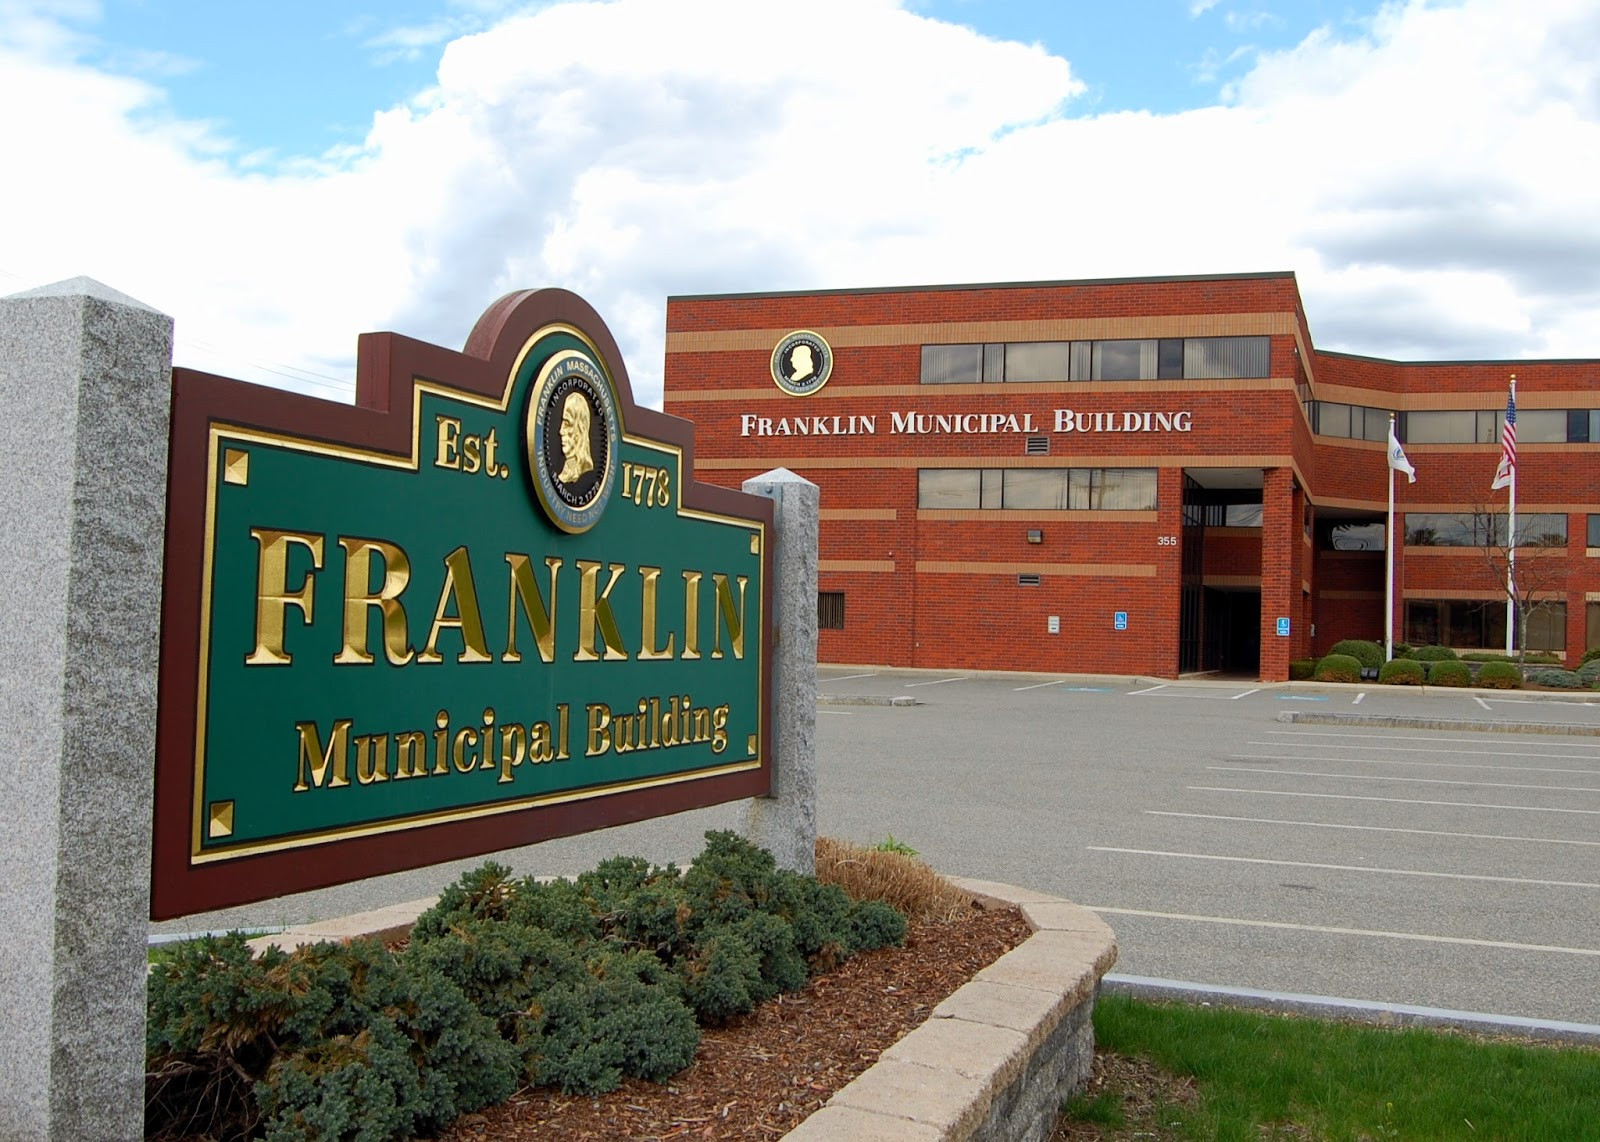 Franklin Municipal Building